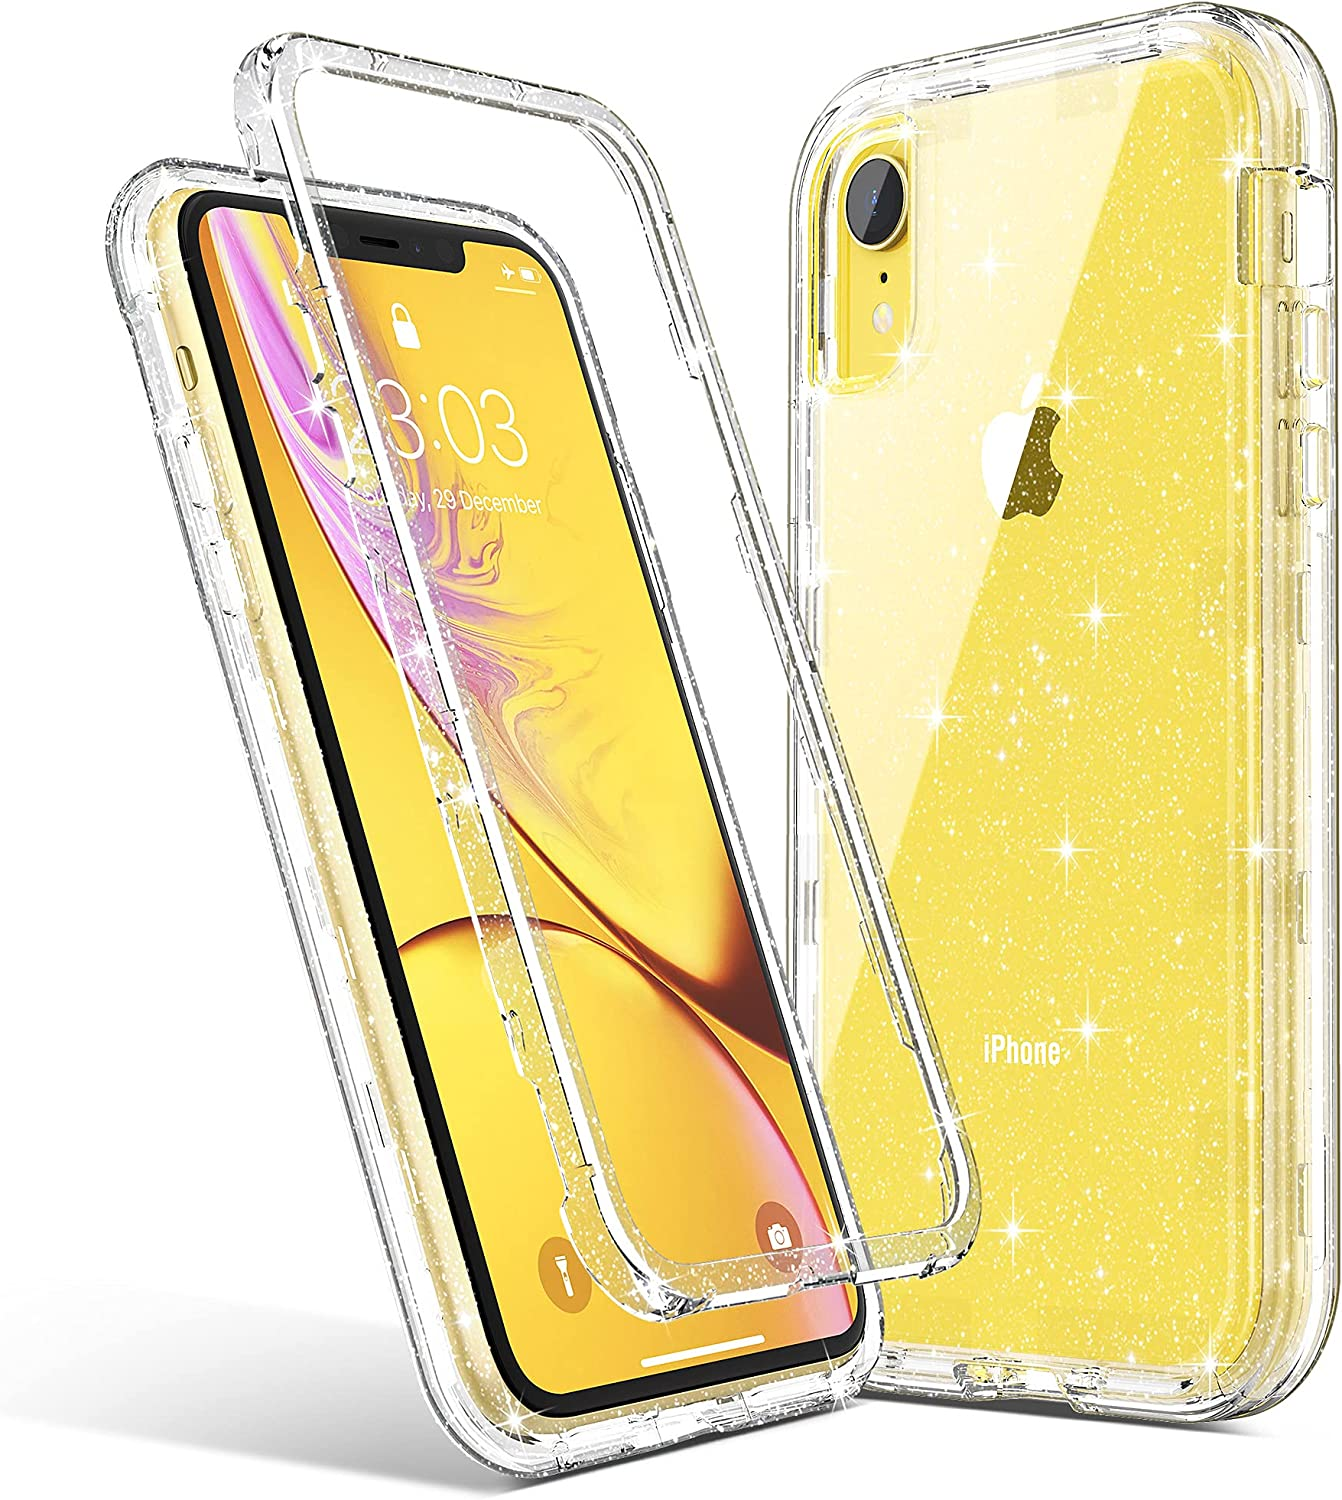 ULAK Stylish Glitter Clear Case for iPhone XR, Heavy Duty Hybrid Hard PC Back Cover with Shock Absorption Bumper and Front Frame Anti-Scratch Premium Phone Case for iPhone XR 6.1 inch, Glitter